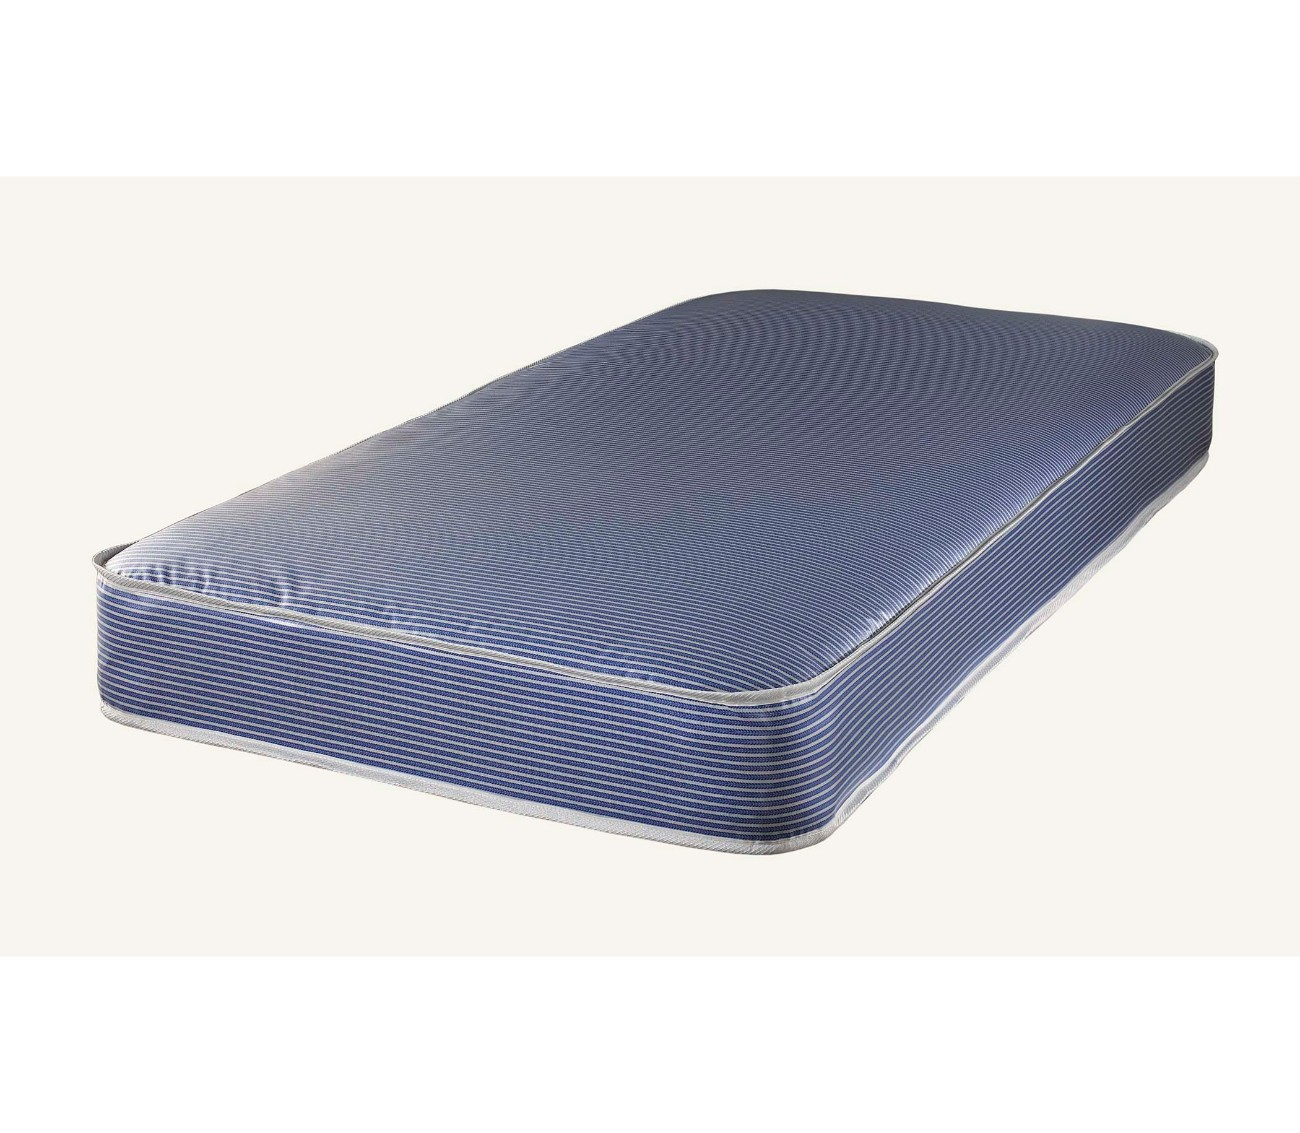 thumb_dvr_m_waterproof_mattress